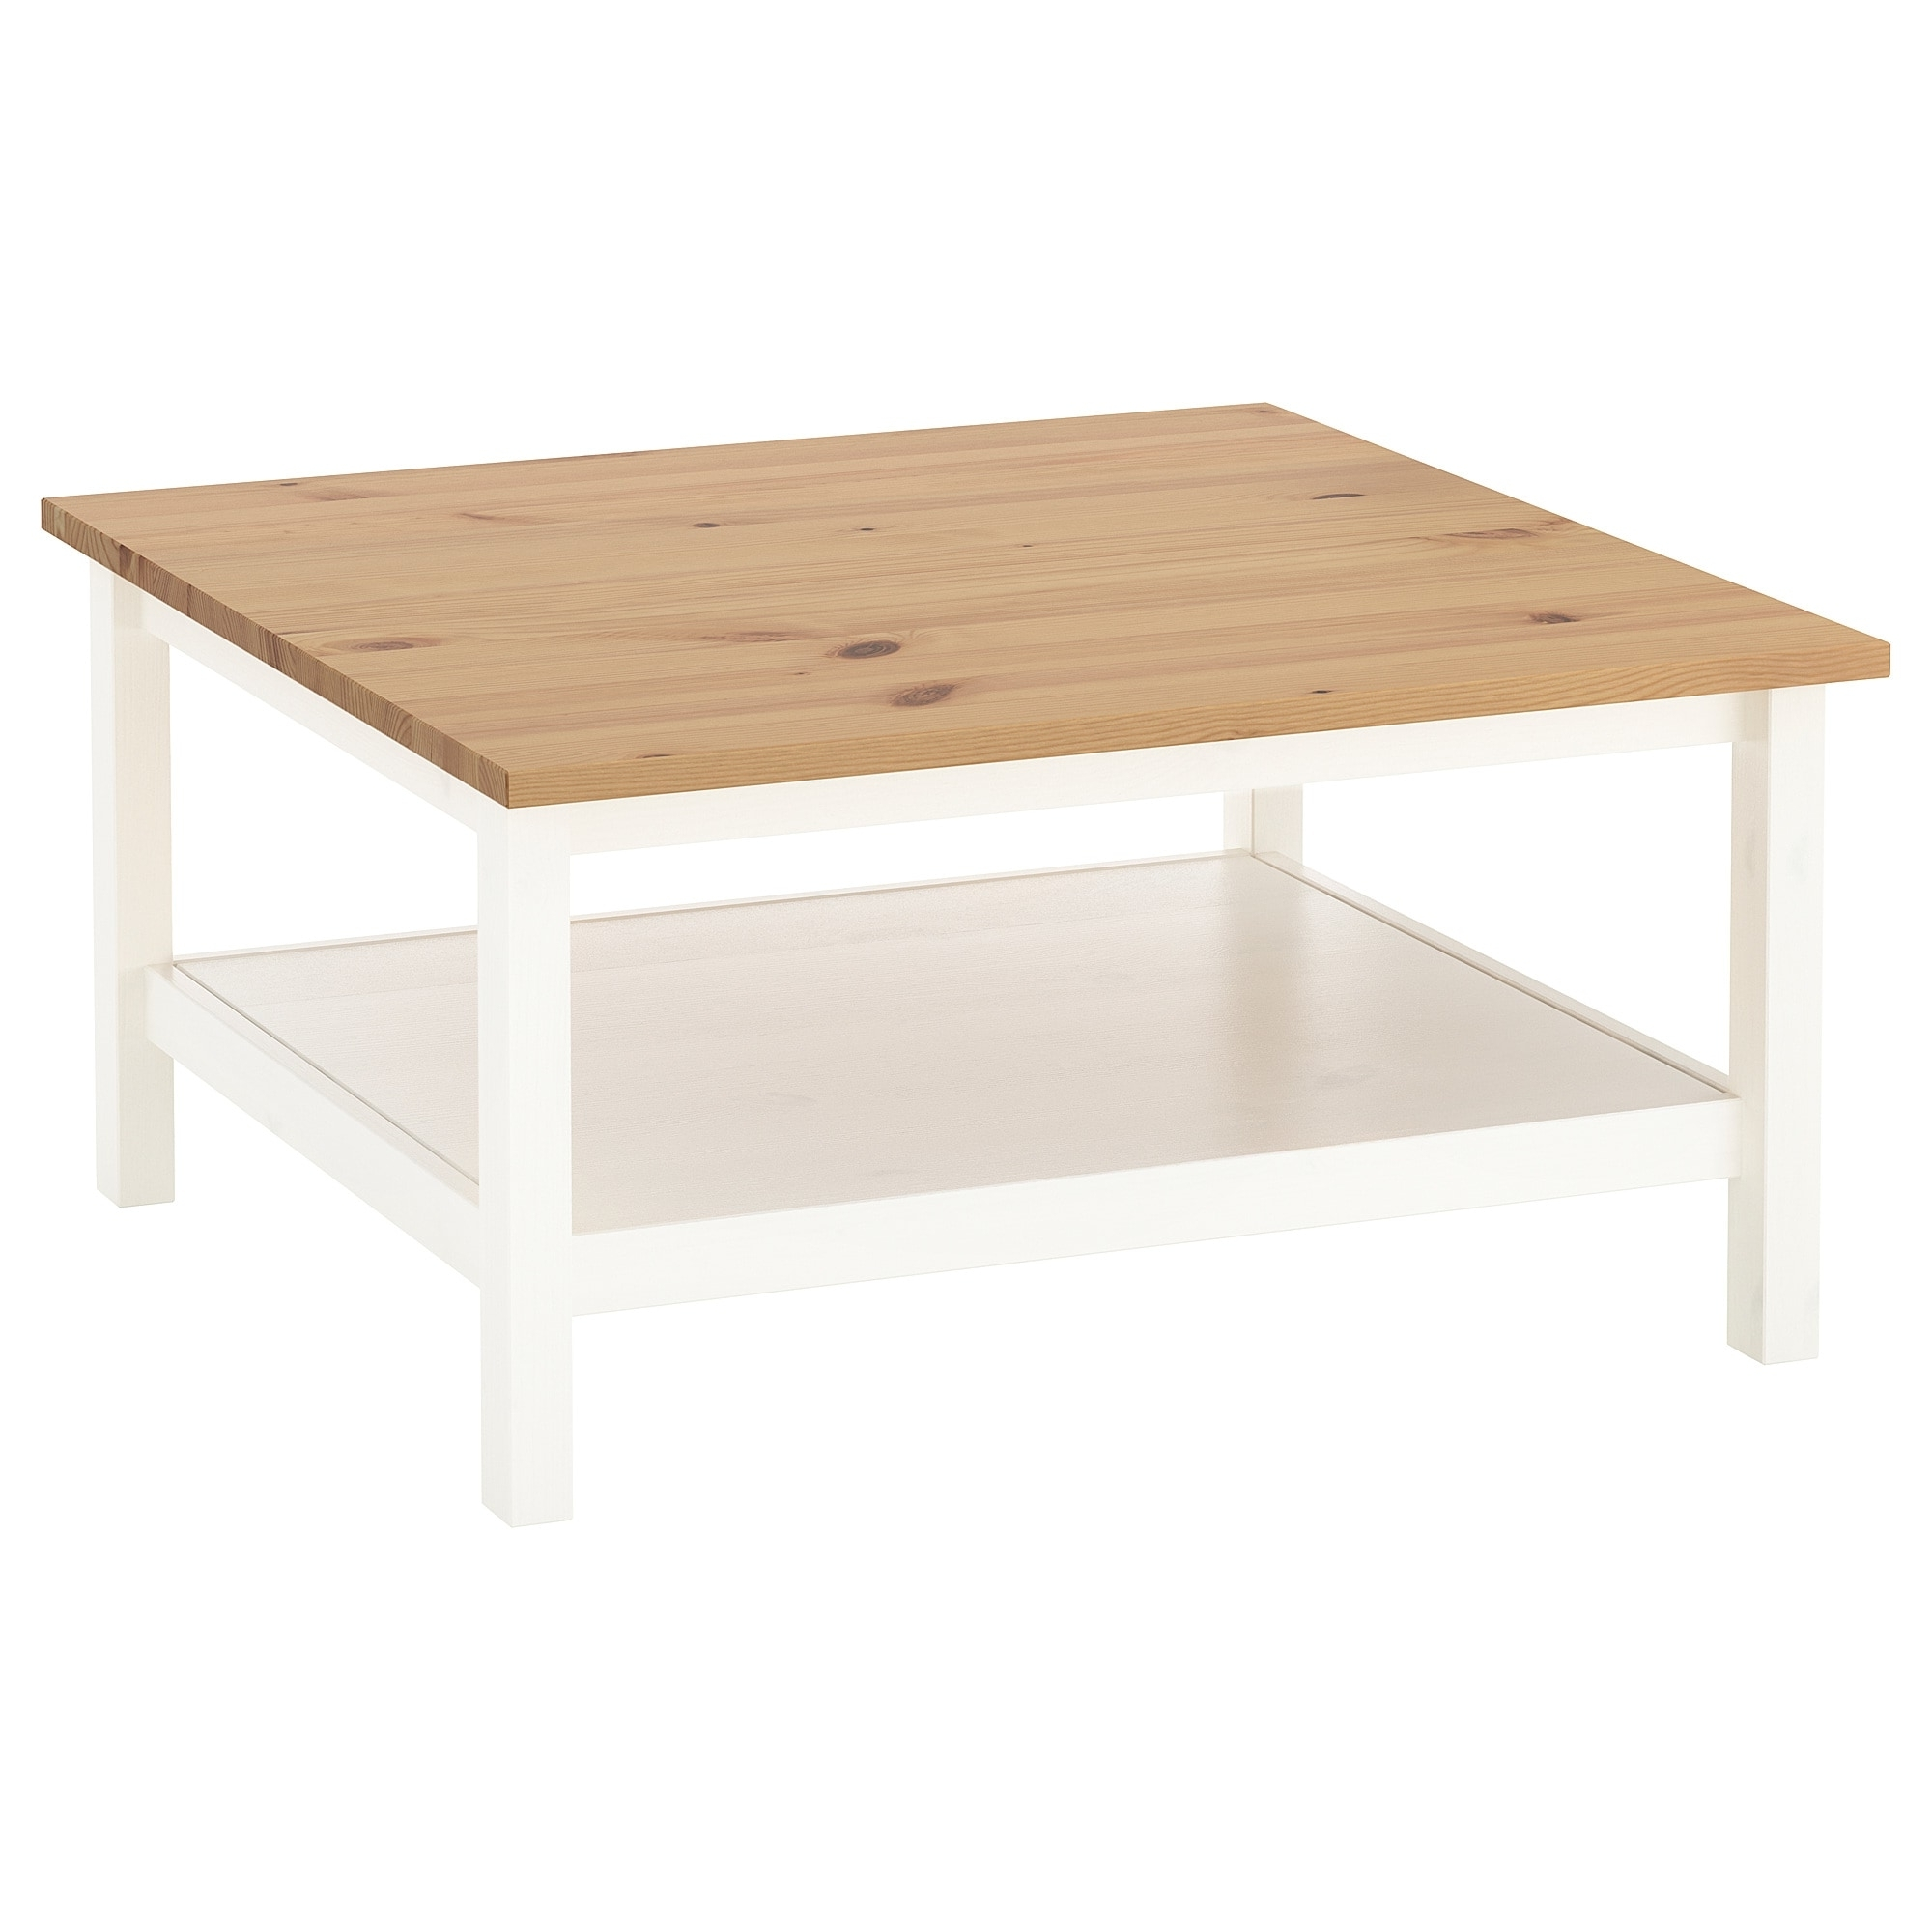 Most Current Light Natural Coffee Tables Pertaining To Hemnes Coffee Table White Stain/light Brown 90 X 90 Cm – Ikea (View 4 of 20)